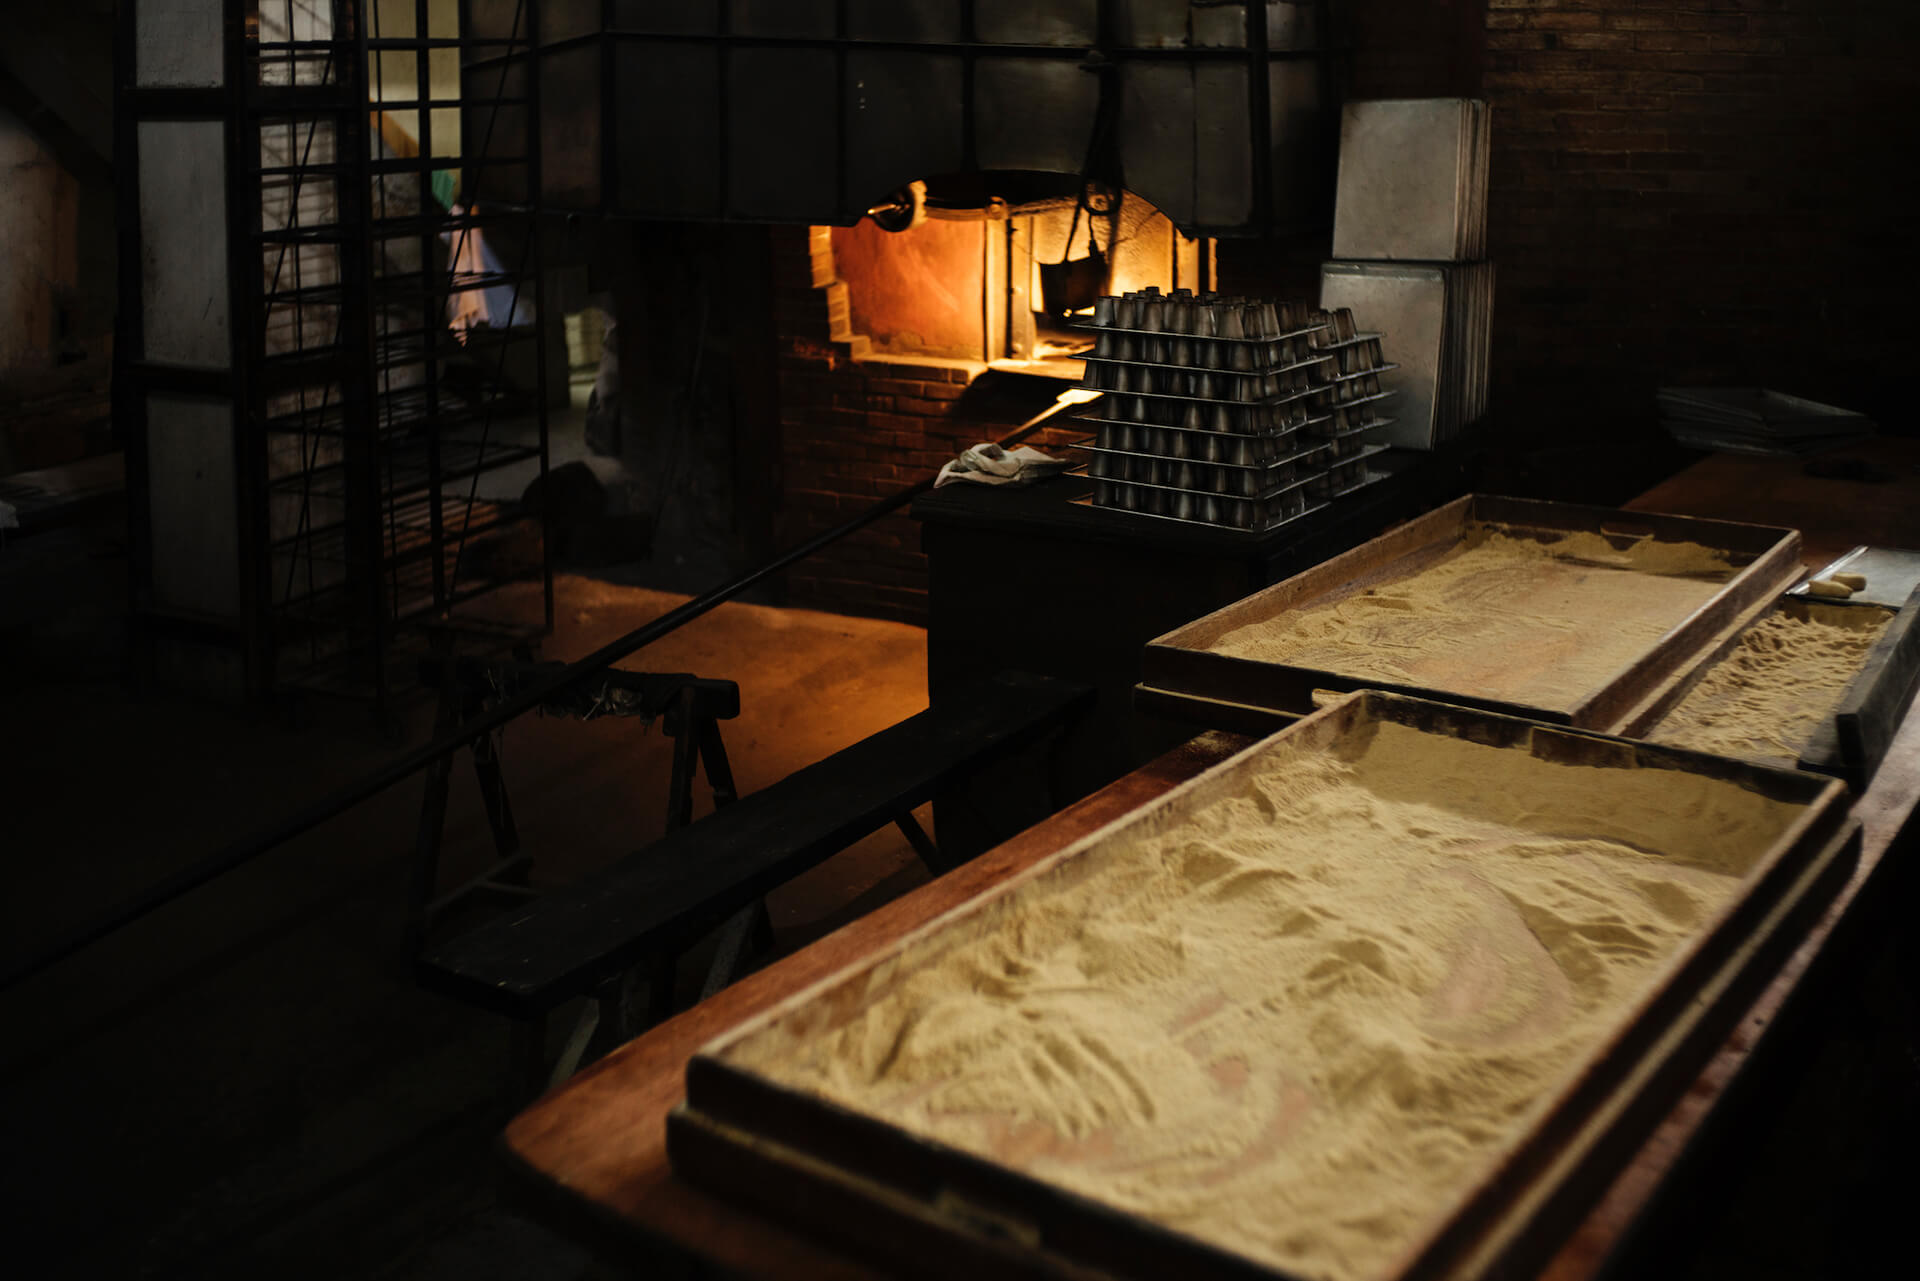 The bakers' work stations near a wood-fired oven at Panaderia Dimas-Alang